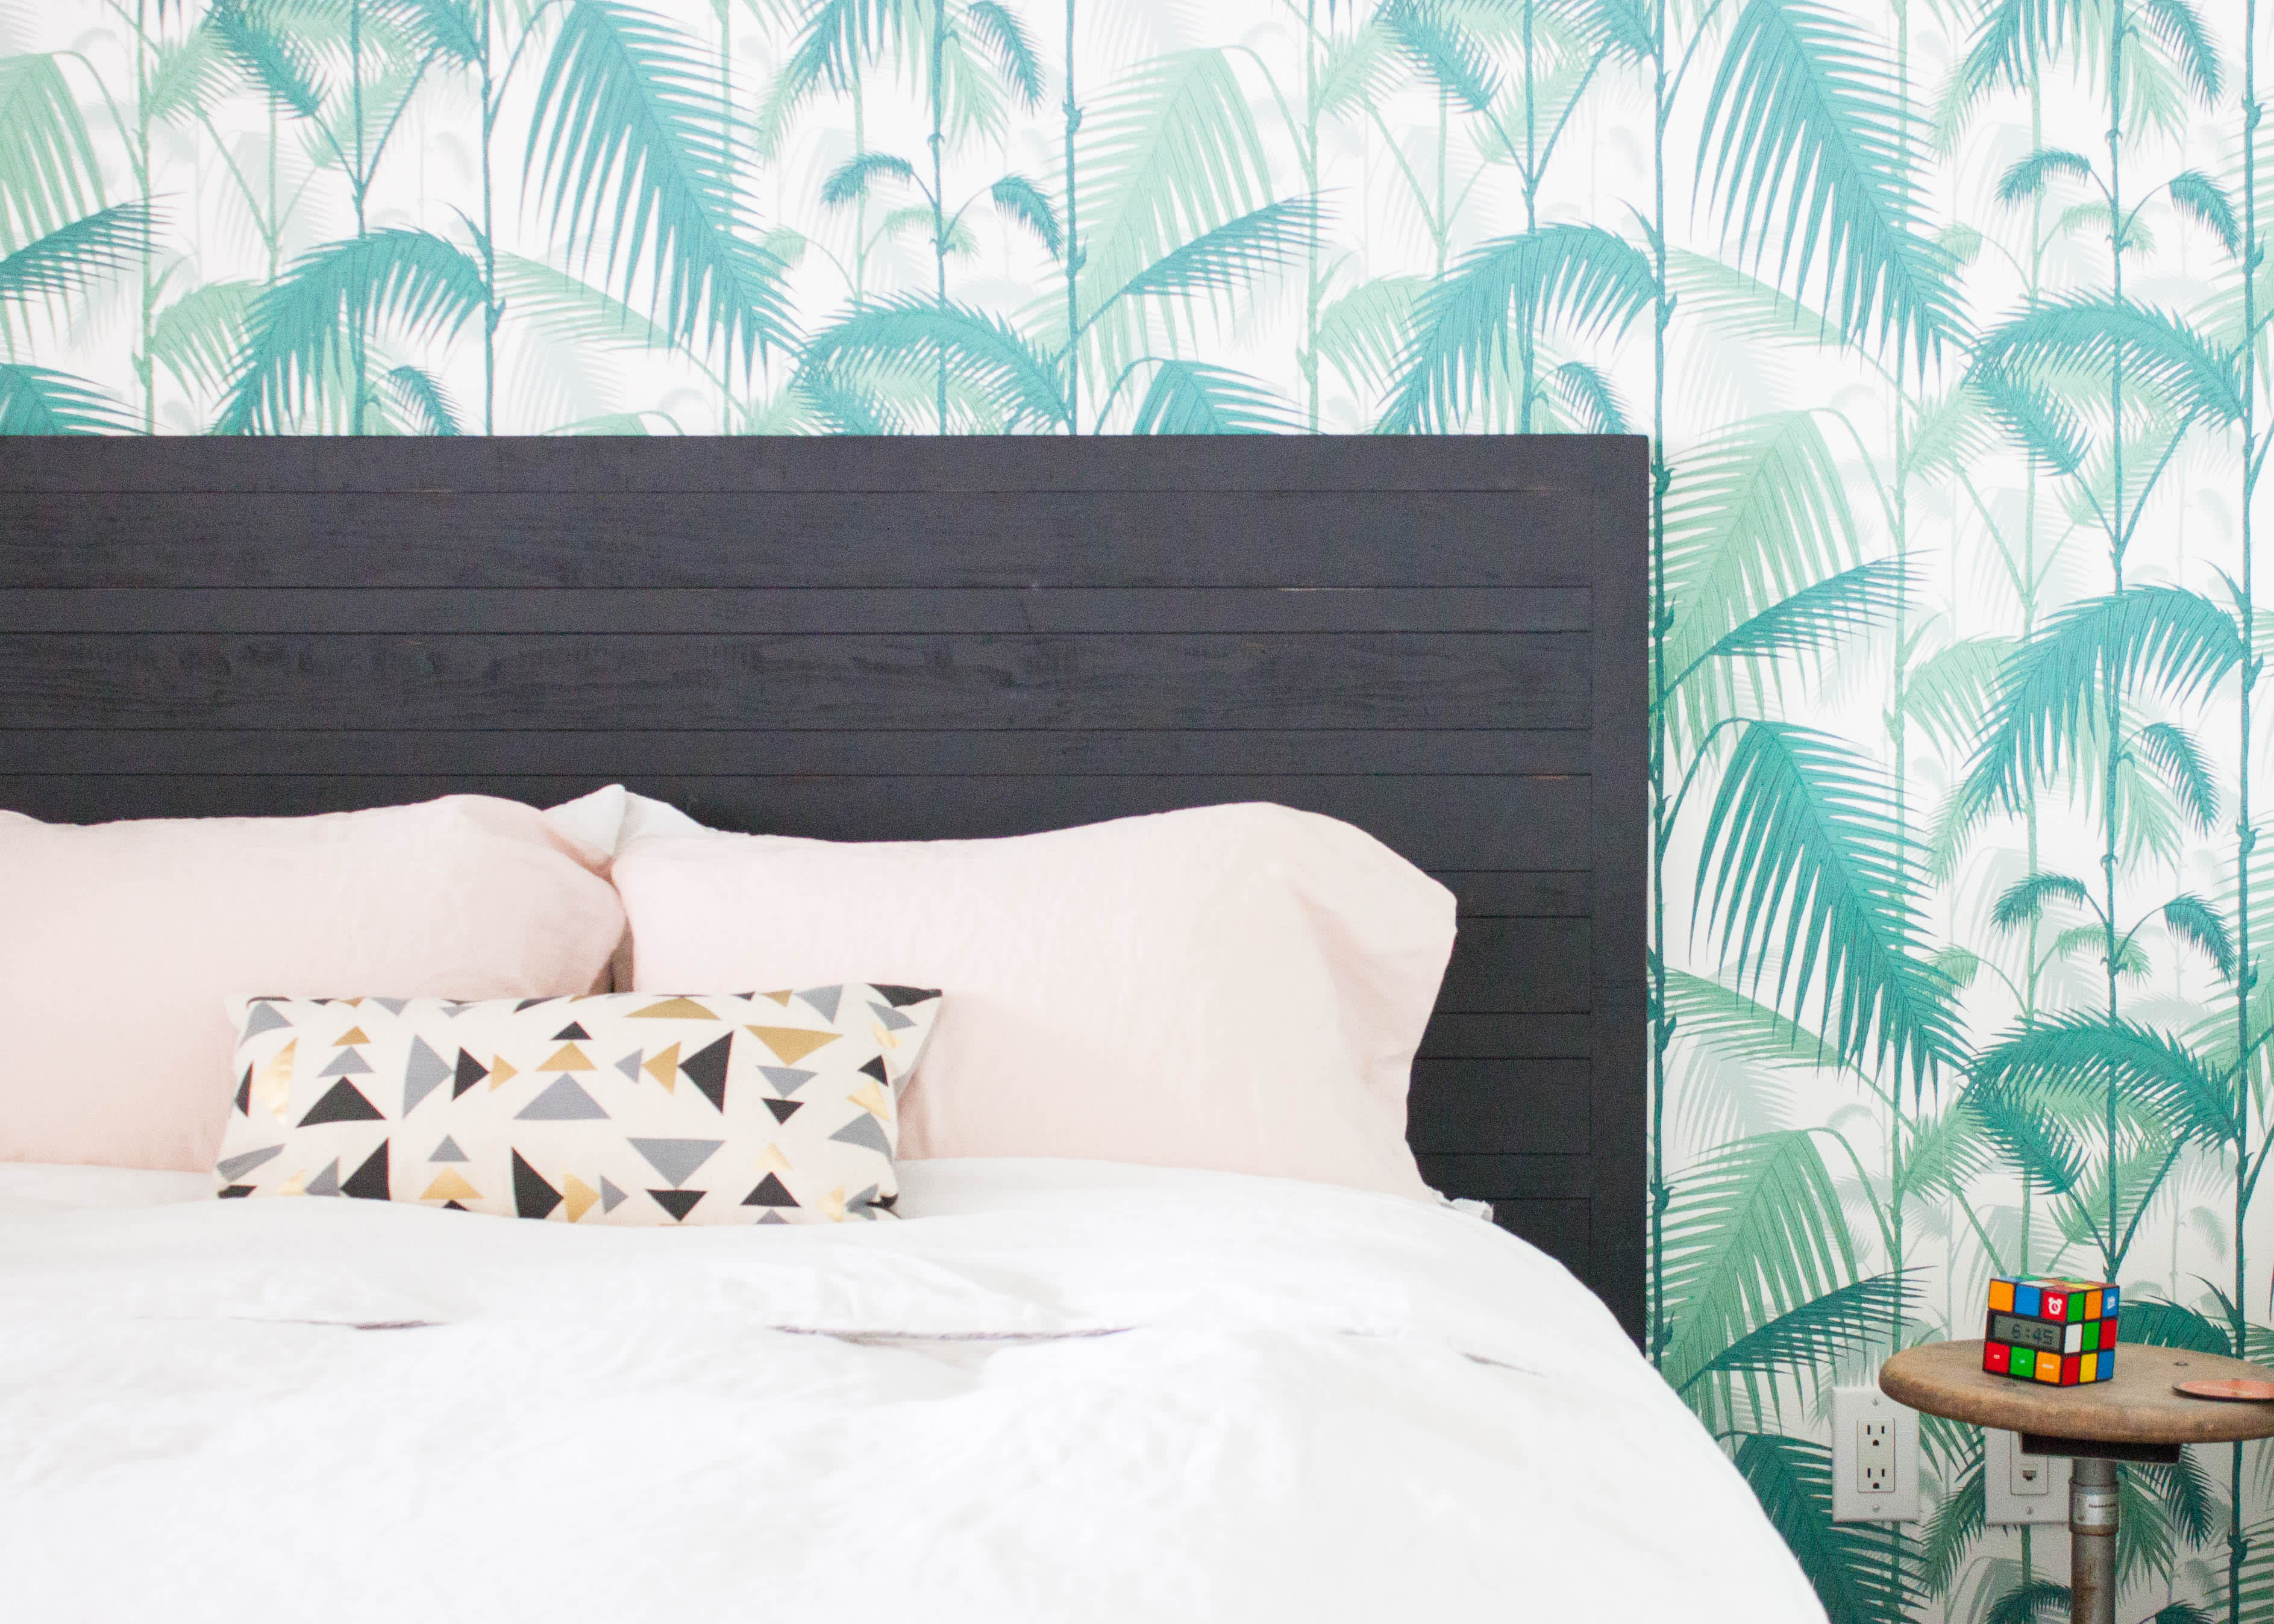 How To Remove Wallpaper (Even When You Really, Really Dread It)